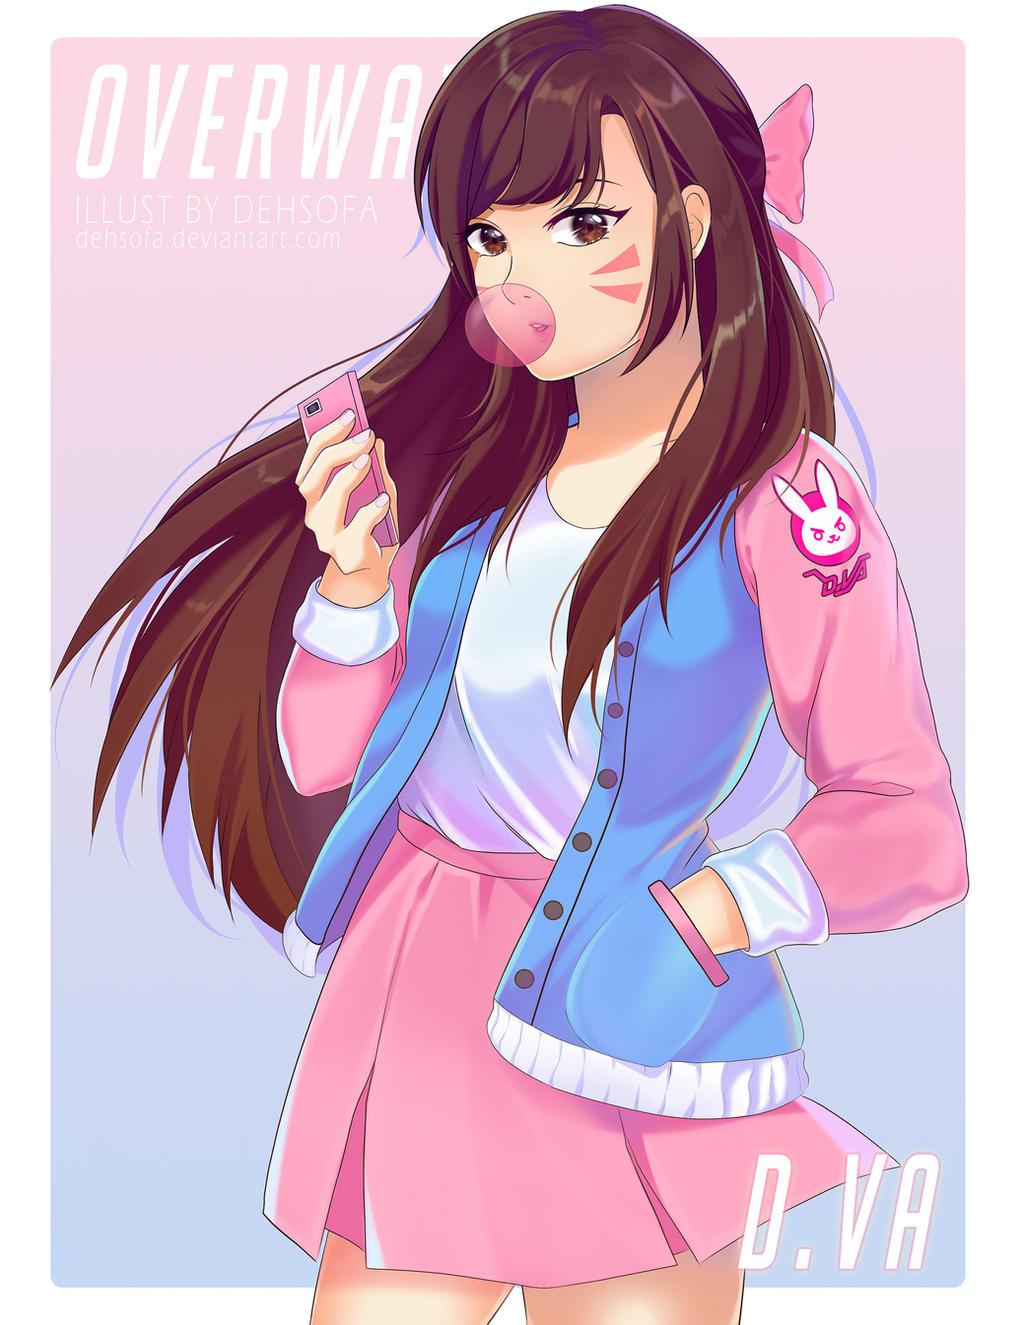 casual d va by dehsofa on deviantart